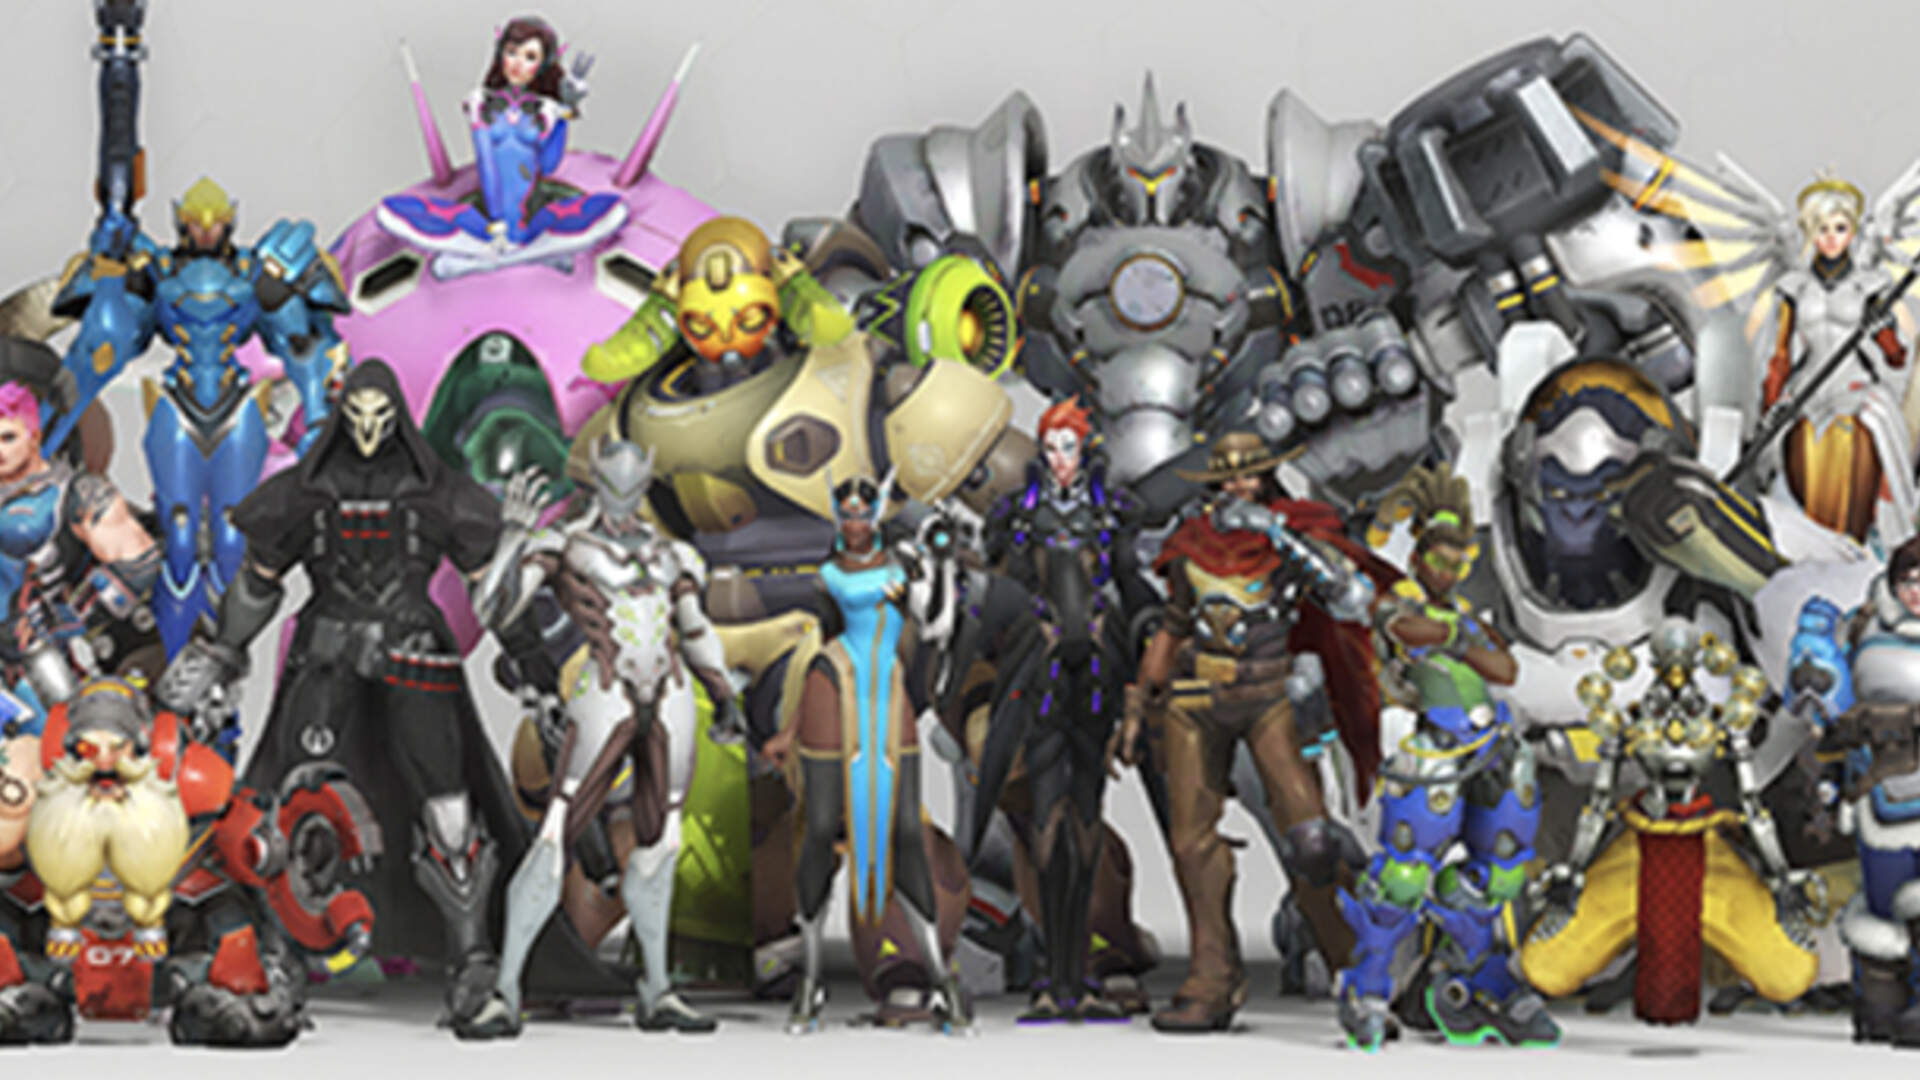 Blizzard Talks Repeat Events, PvE, and More in the Battle to Keep Overwatch Fresh in Year 3